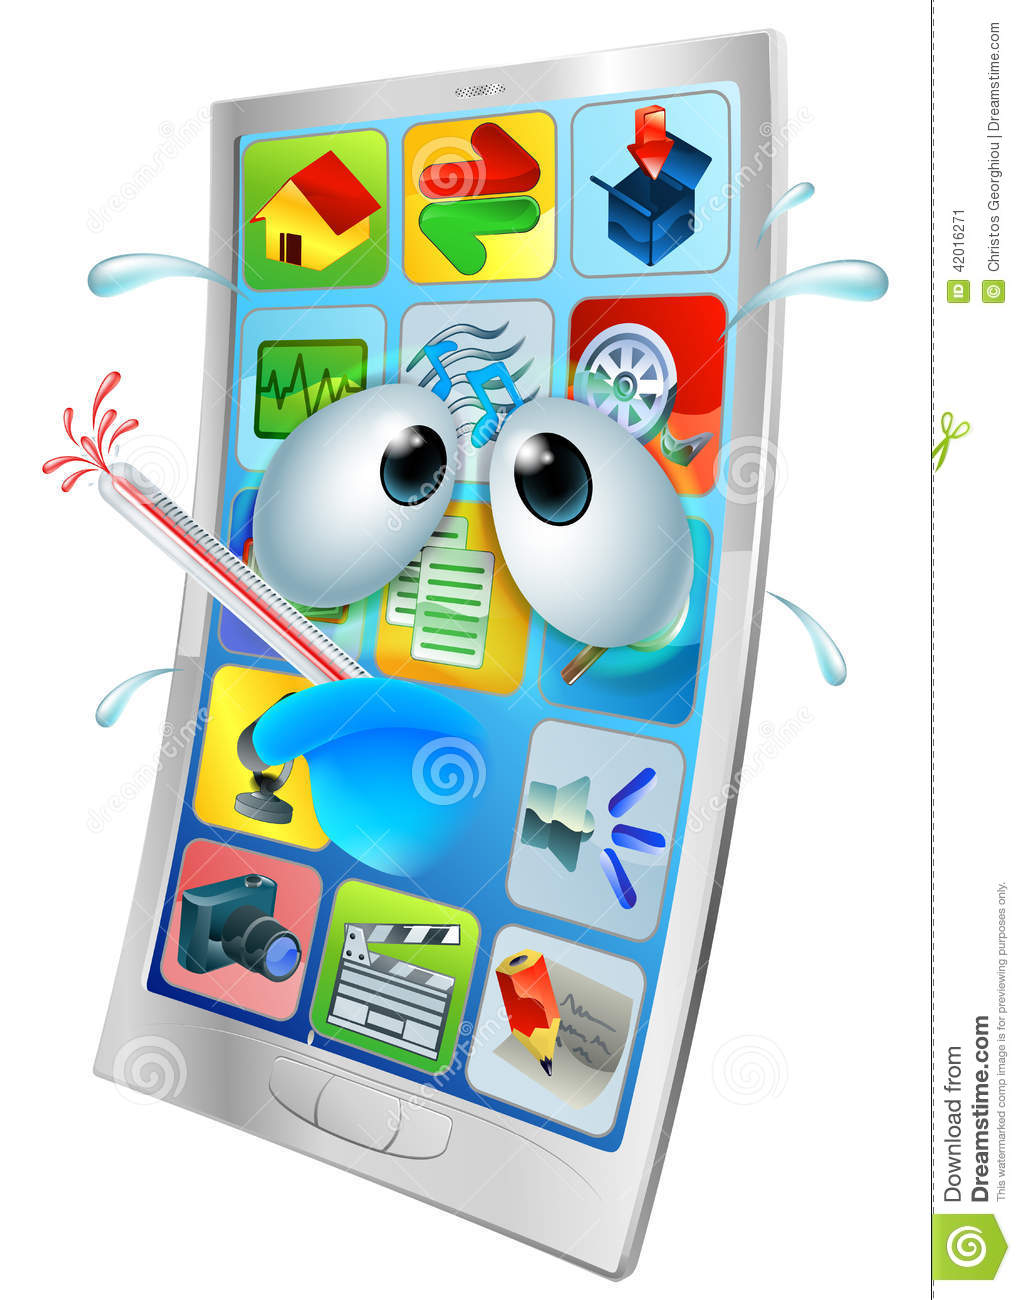 Broken Phone Virus Cartoon Stock Vector